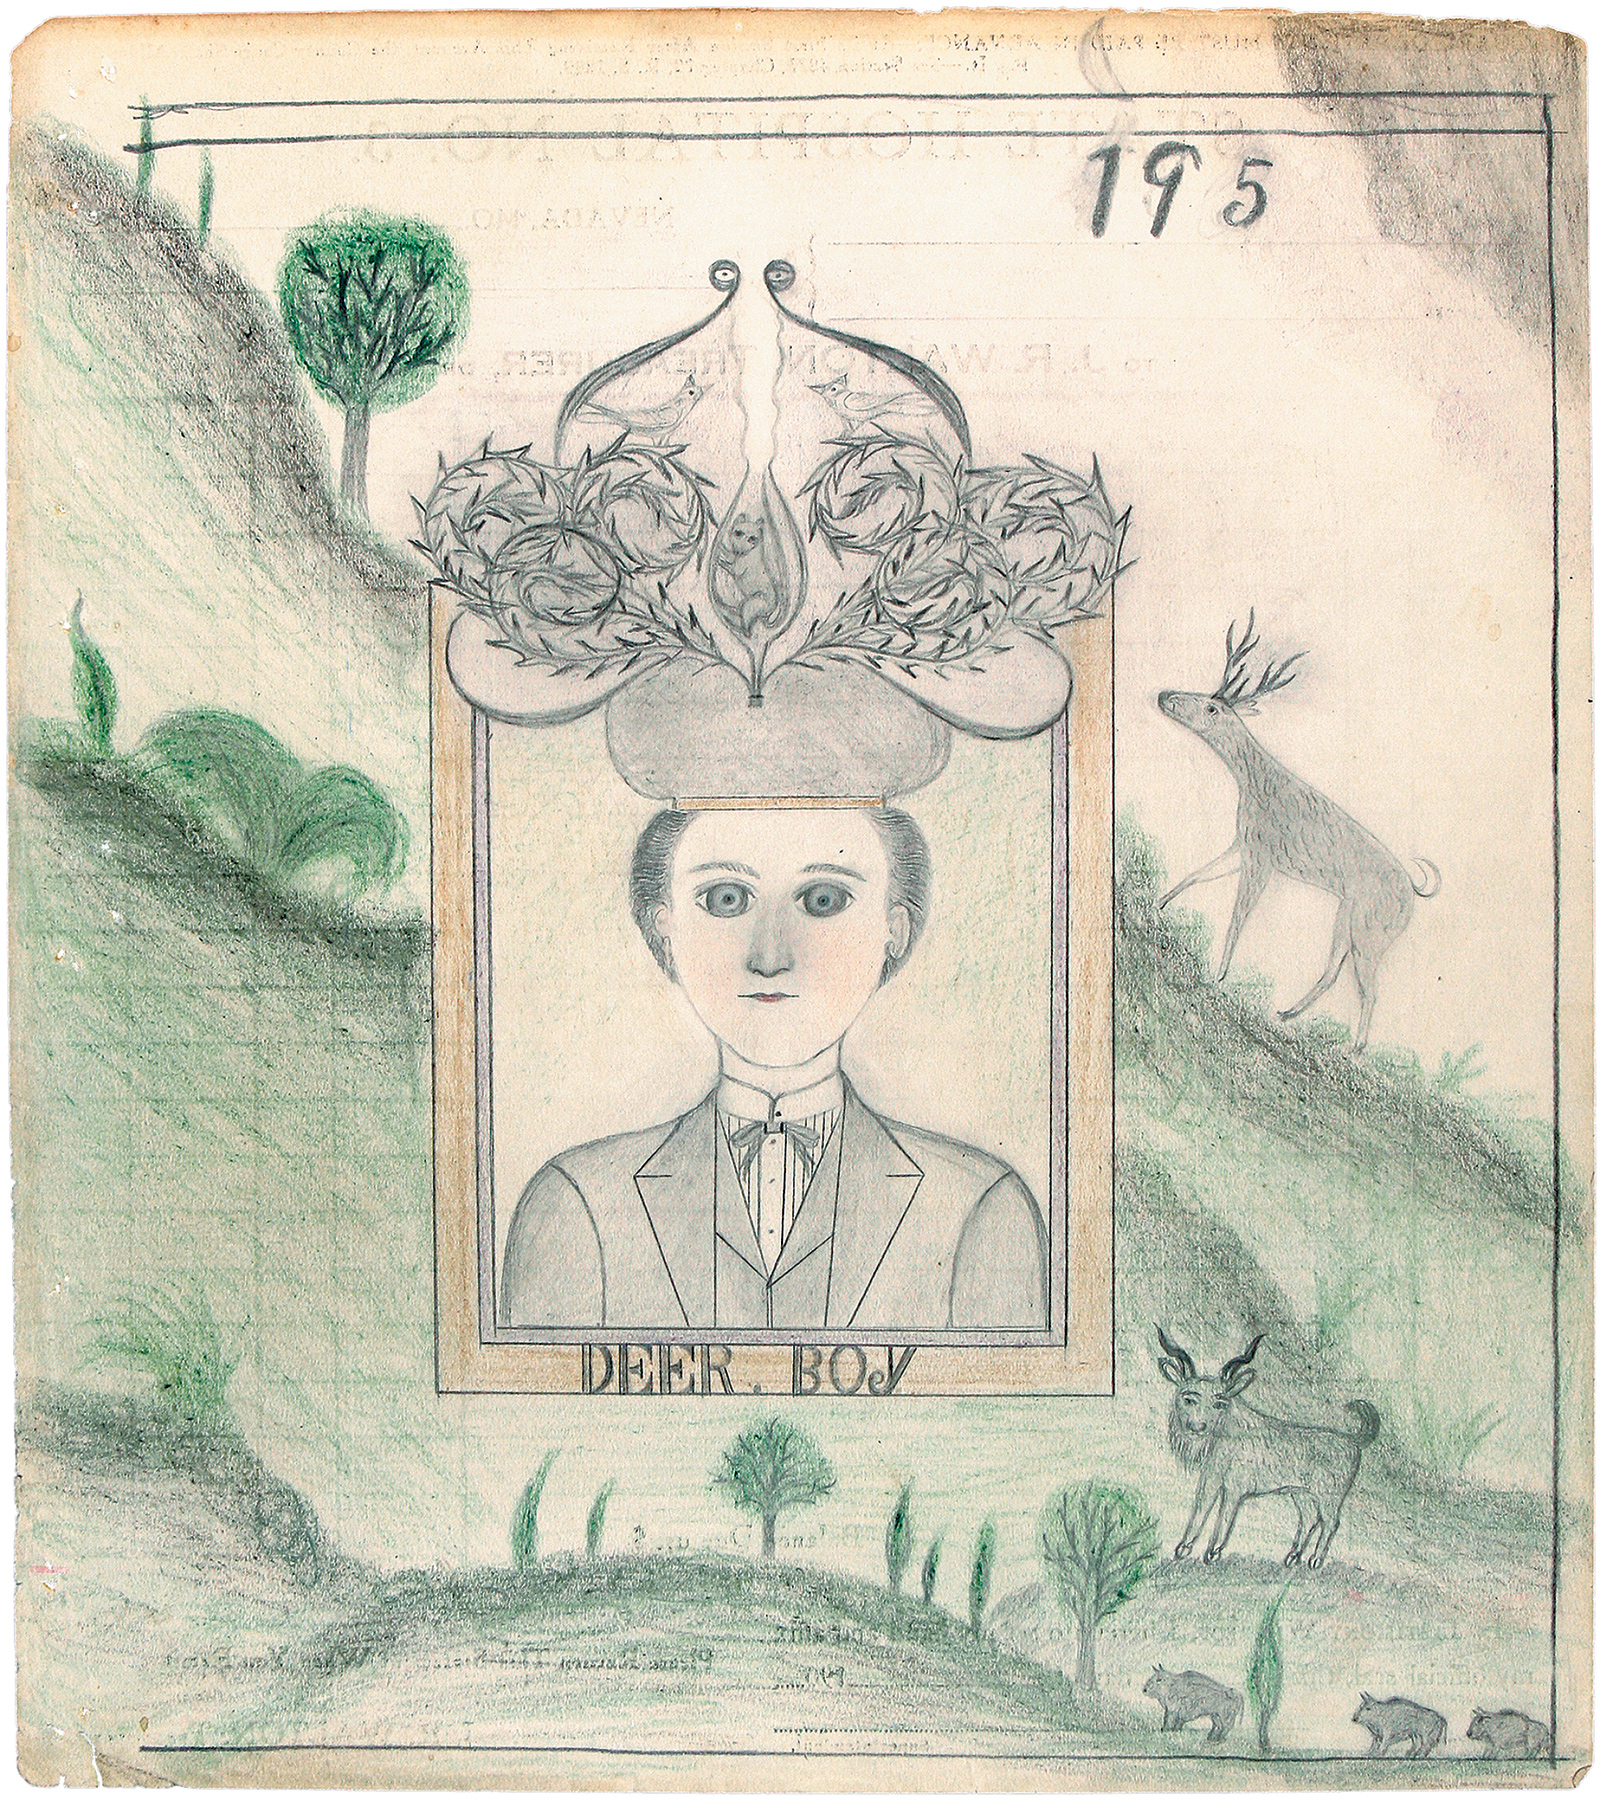 'Deer, Boy'; drawing by James Edward Deeds Jr. from an album of nearly three hundred drawings that he made during his thirty-seven years as an inmate at a psychiatric hospital in Nevada, Missouri, starting in 1936. The drawings are collected in The Electric Pencil: Drawings from Inside State Hospital No. 3, with an introduction by Richard Goodman and a foreword by Harris Diamant, just published by Princeton Architectural Press.